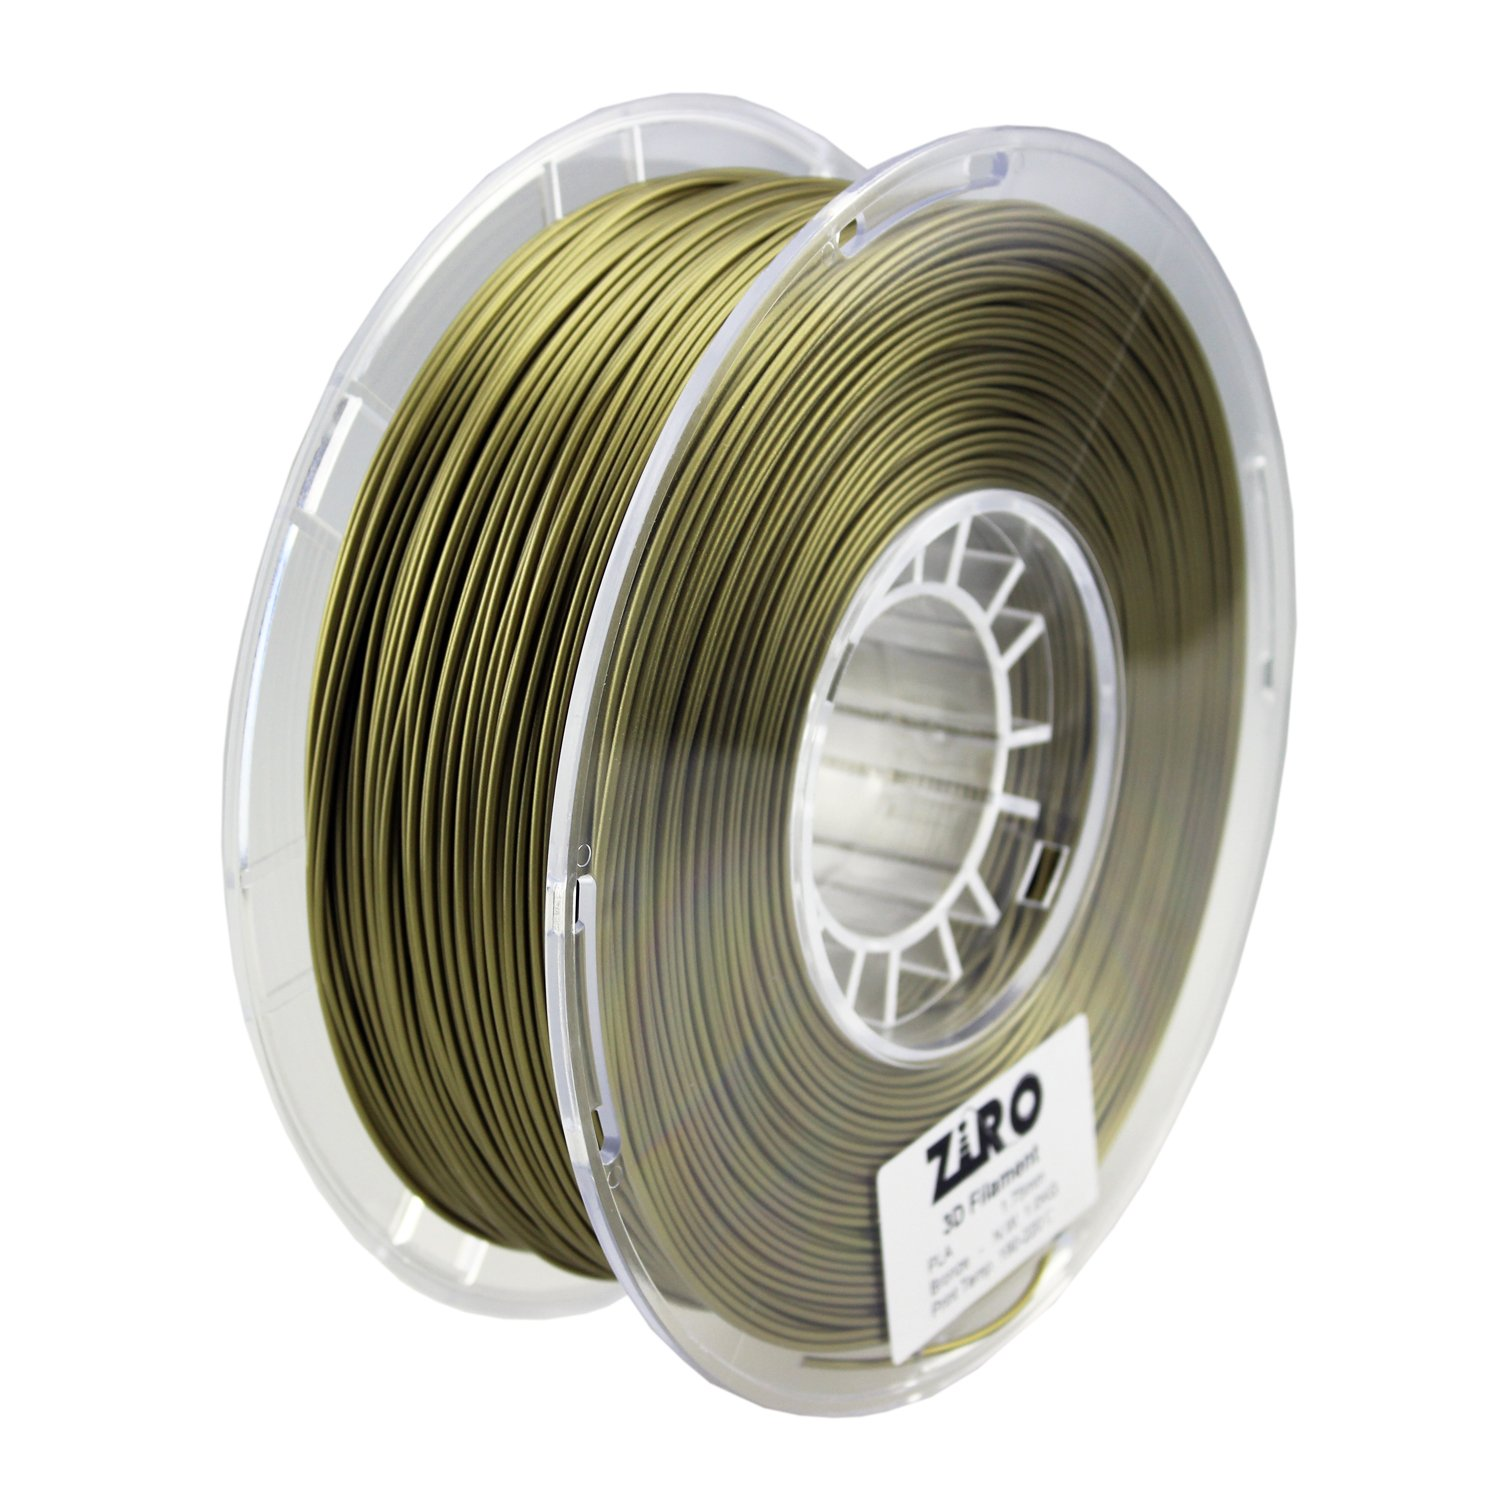 ZIRO 3D Printer Filament PLA 1.75 1KG(2.2lbs), Dimensional Accuracy +/- 0.05mm, Bronze